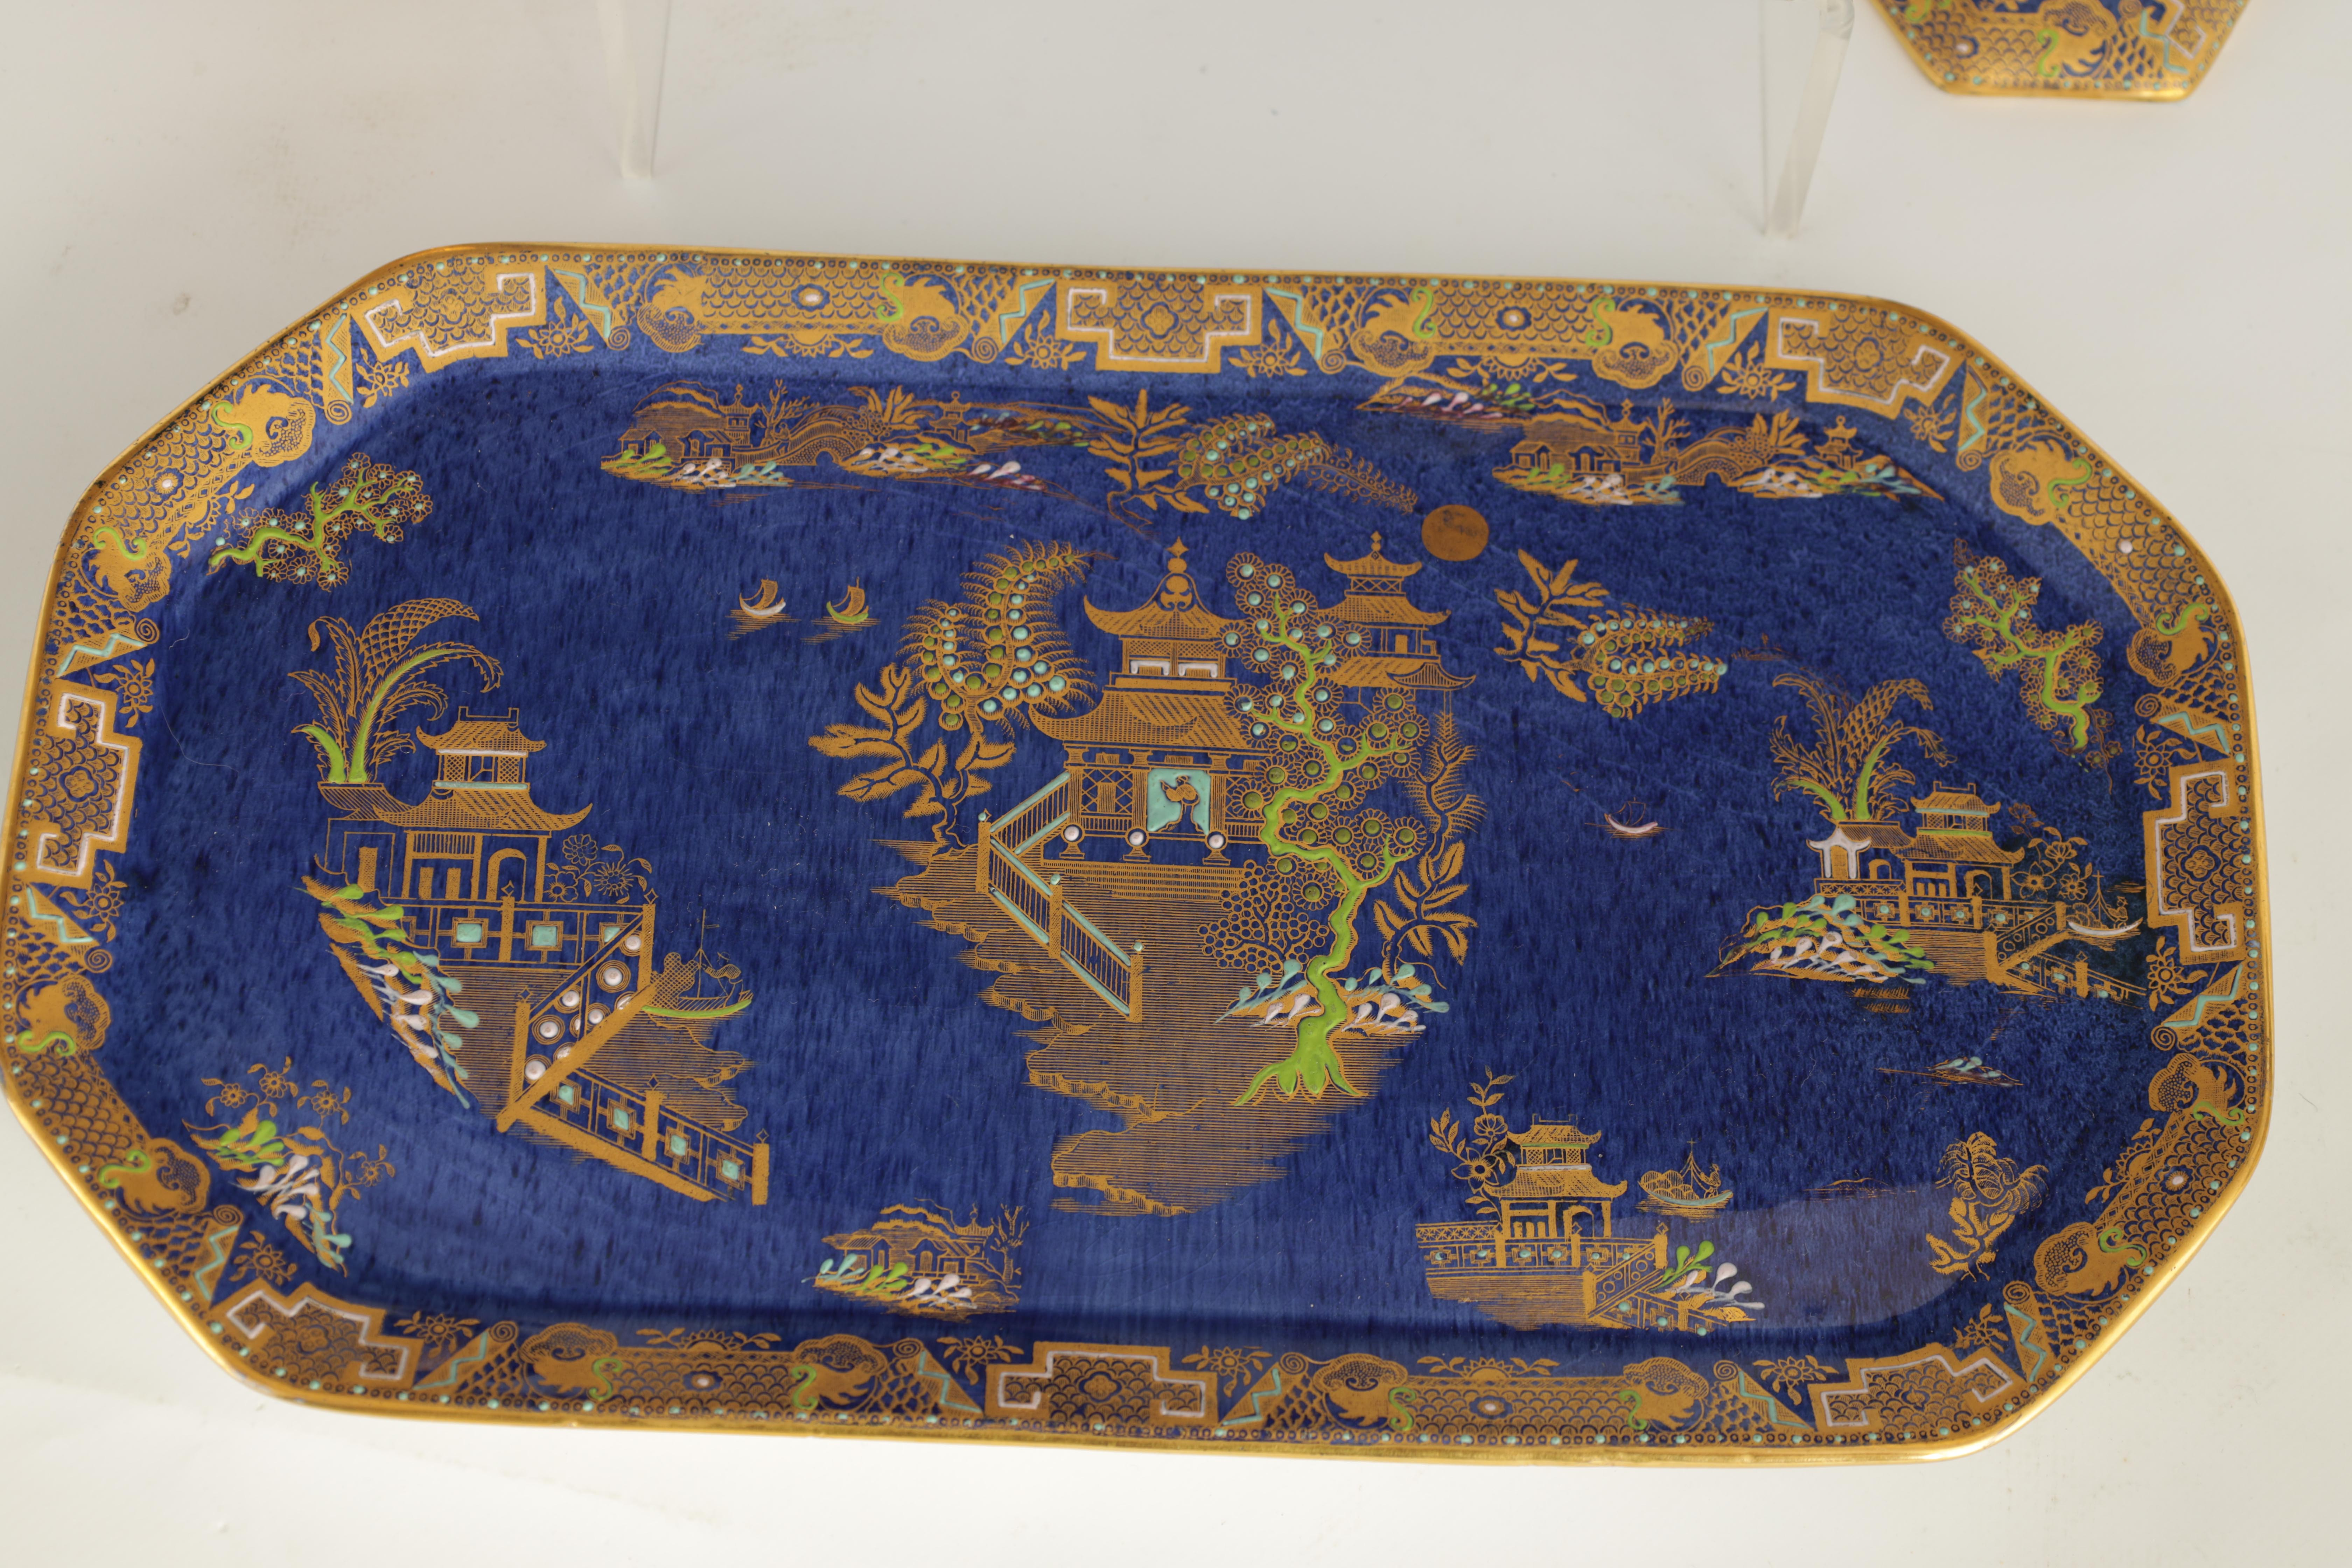 A CARLTON WARE FIVE PIECE DRESSING TABLE SET decorated in an oriental gilt pattern with pagodas - Image 4 of 18